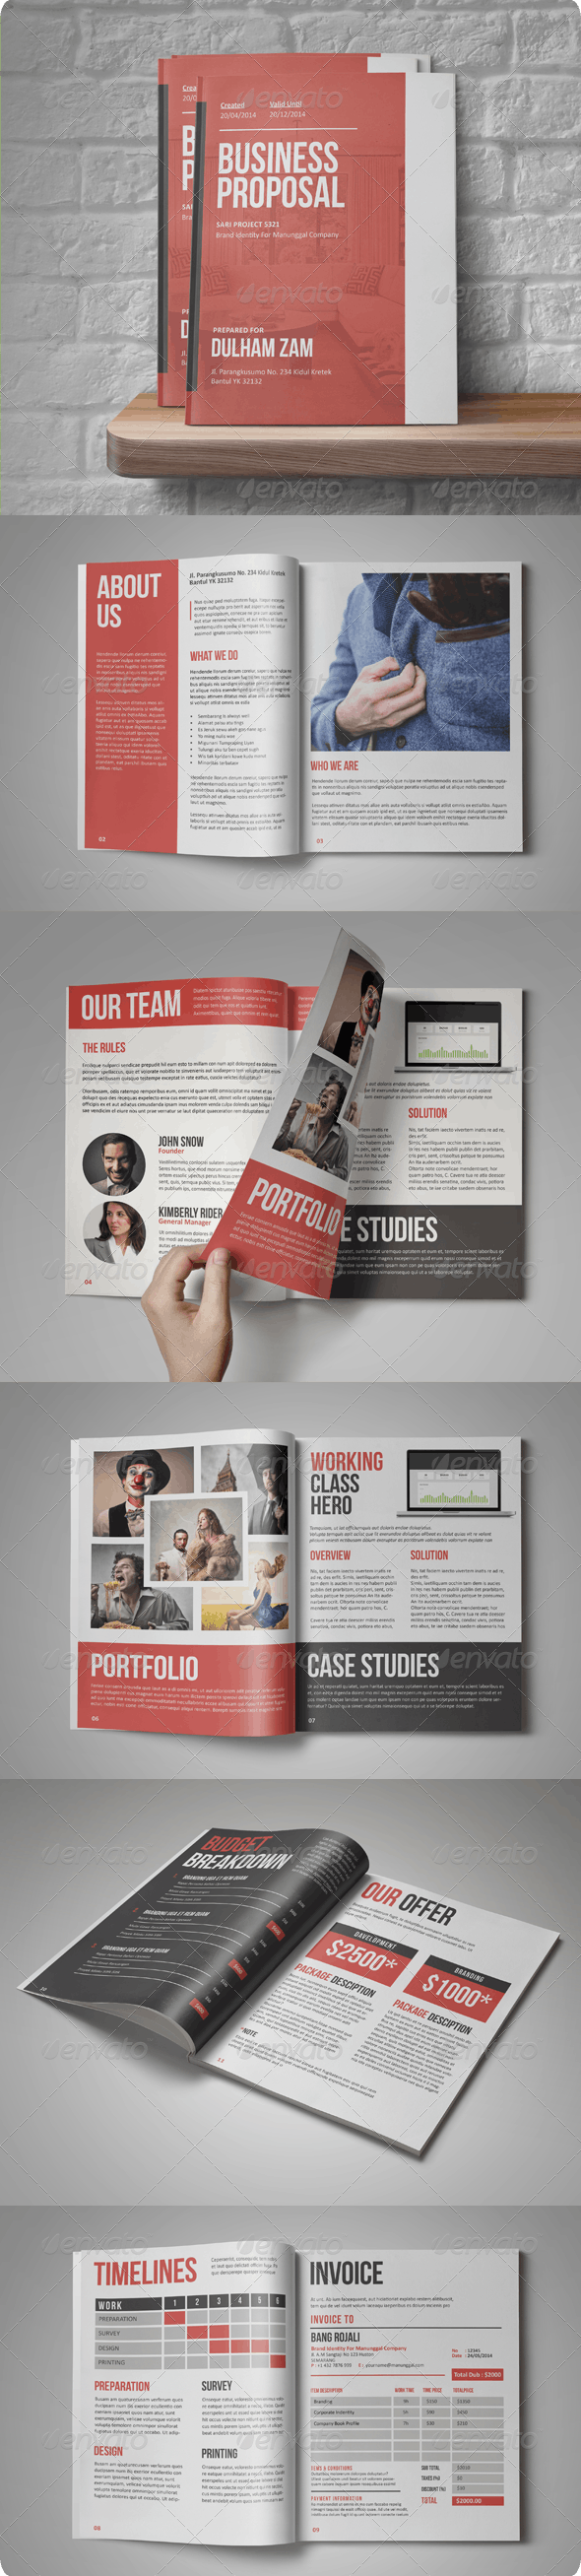 Sari Business Proposal - Proposals & Invoices Stationery